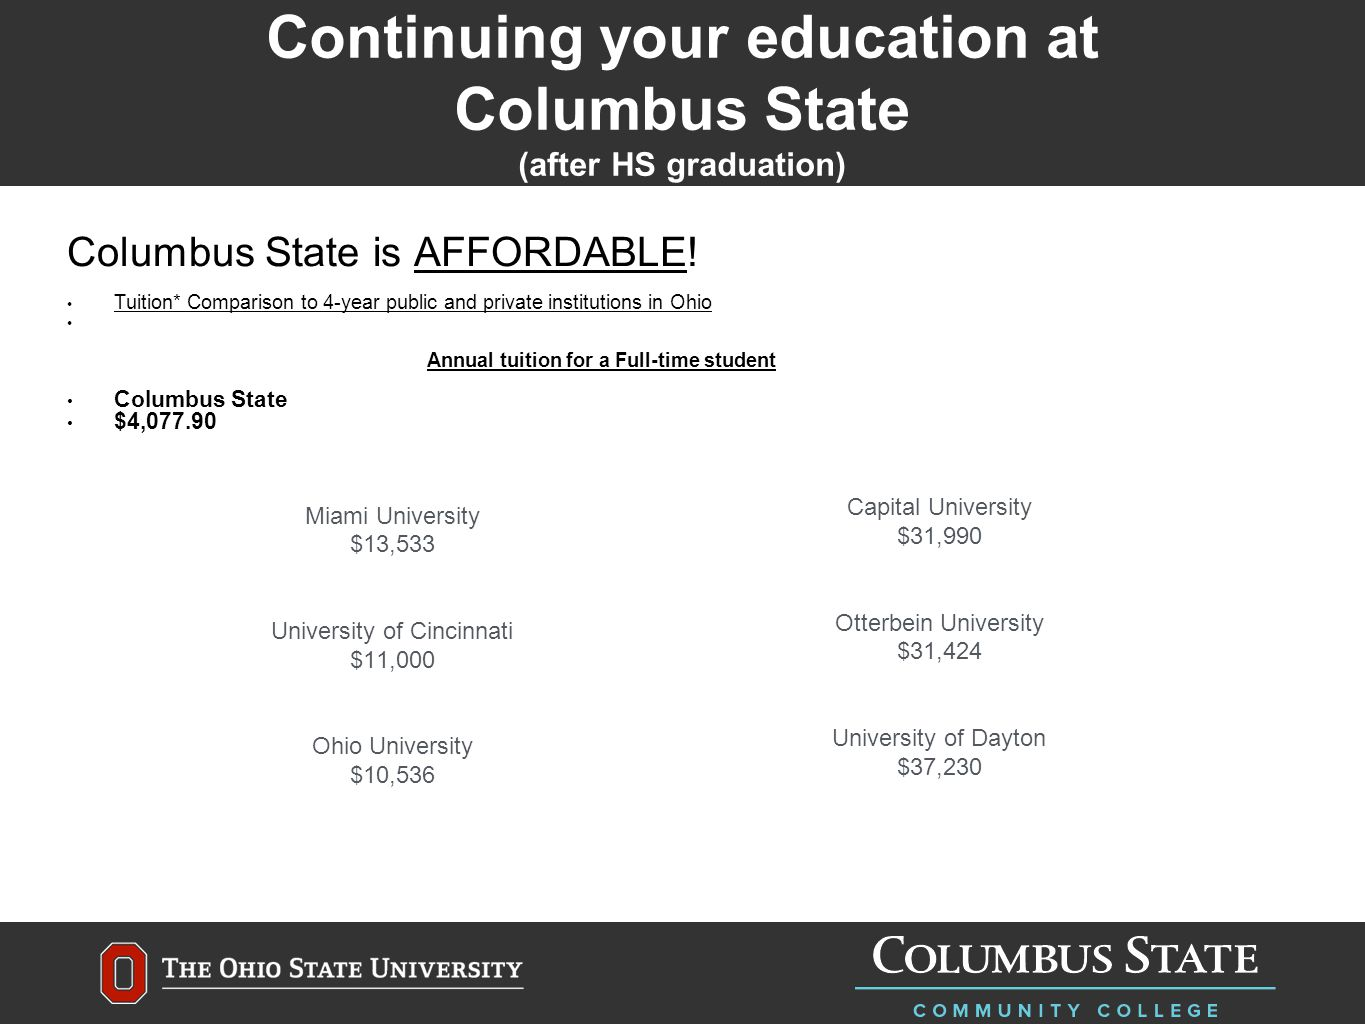 Continuing your education at Columbus State (after HS graduation) Columbus State is AFFORDABLE.